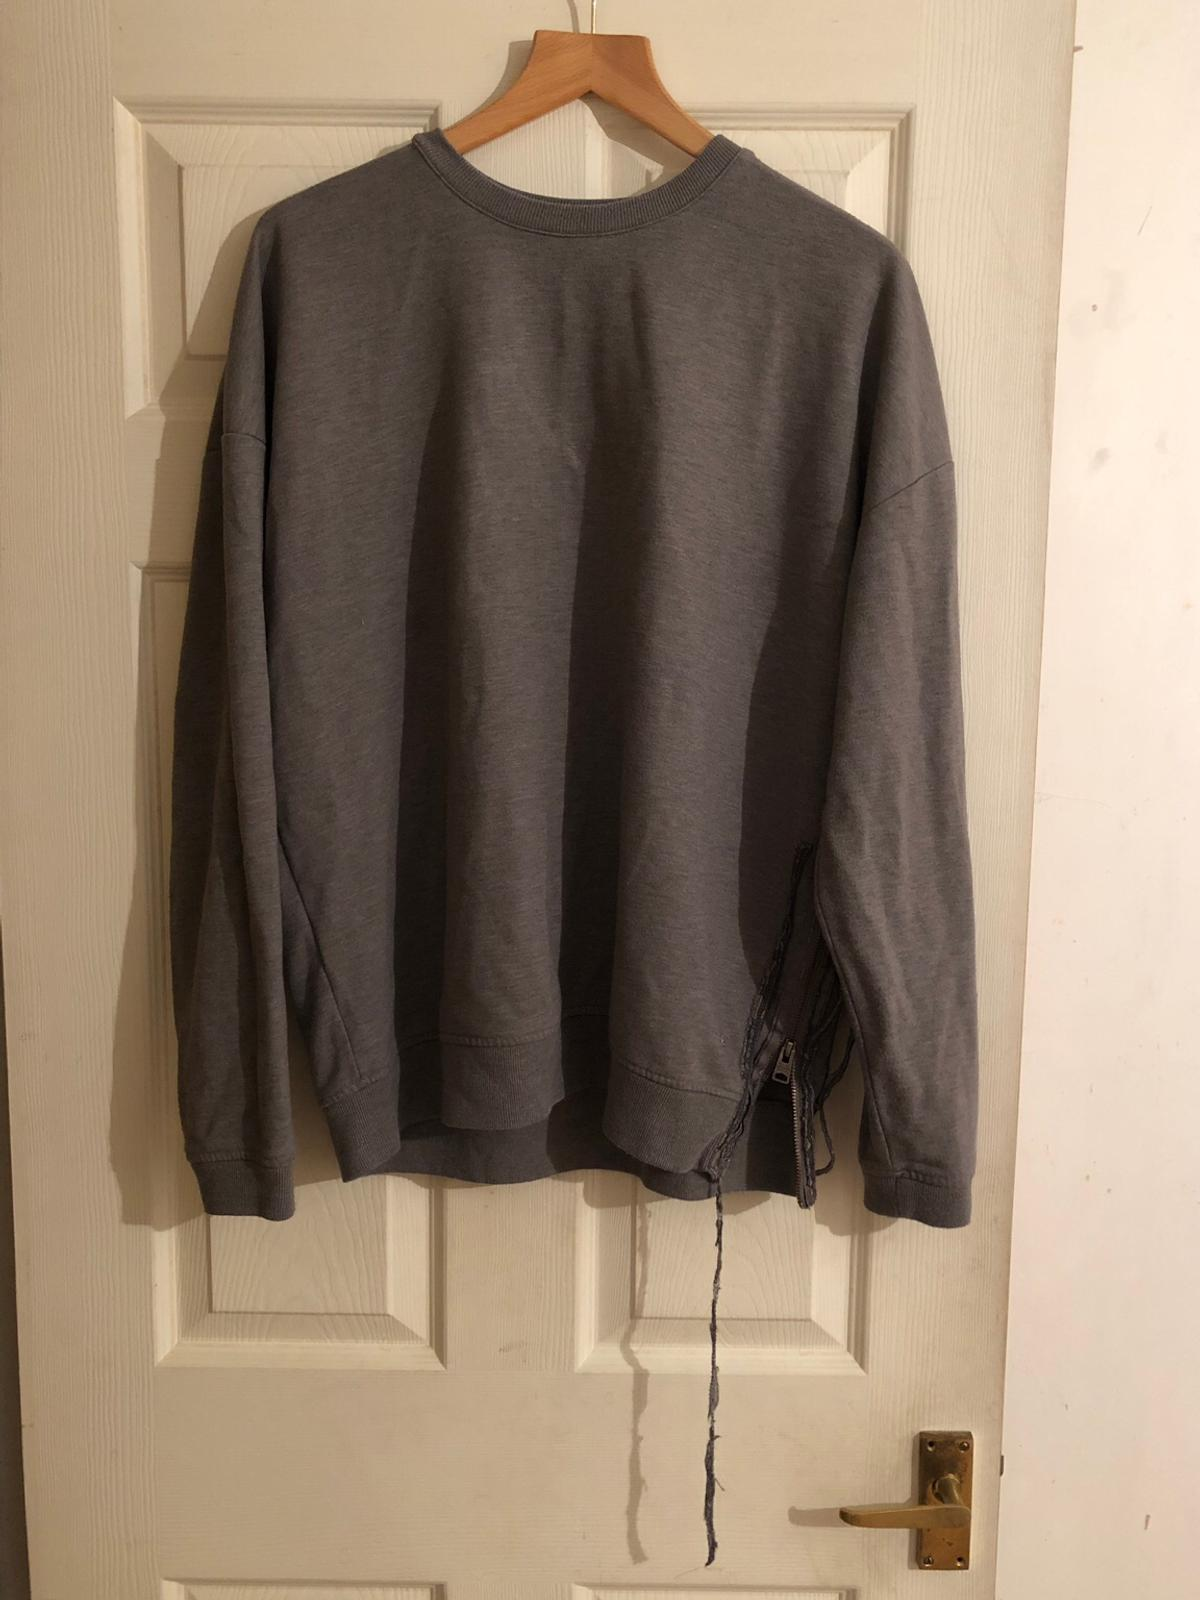 Men's Allsaints jumper worn once, Can post for an additional cost. Size medium